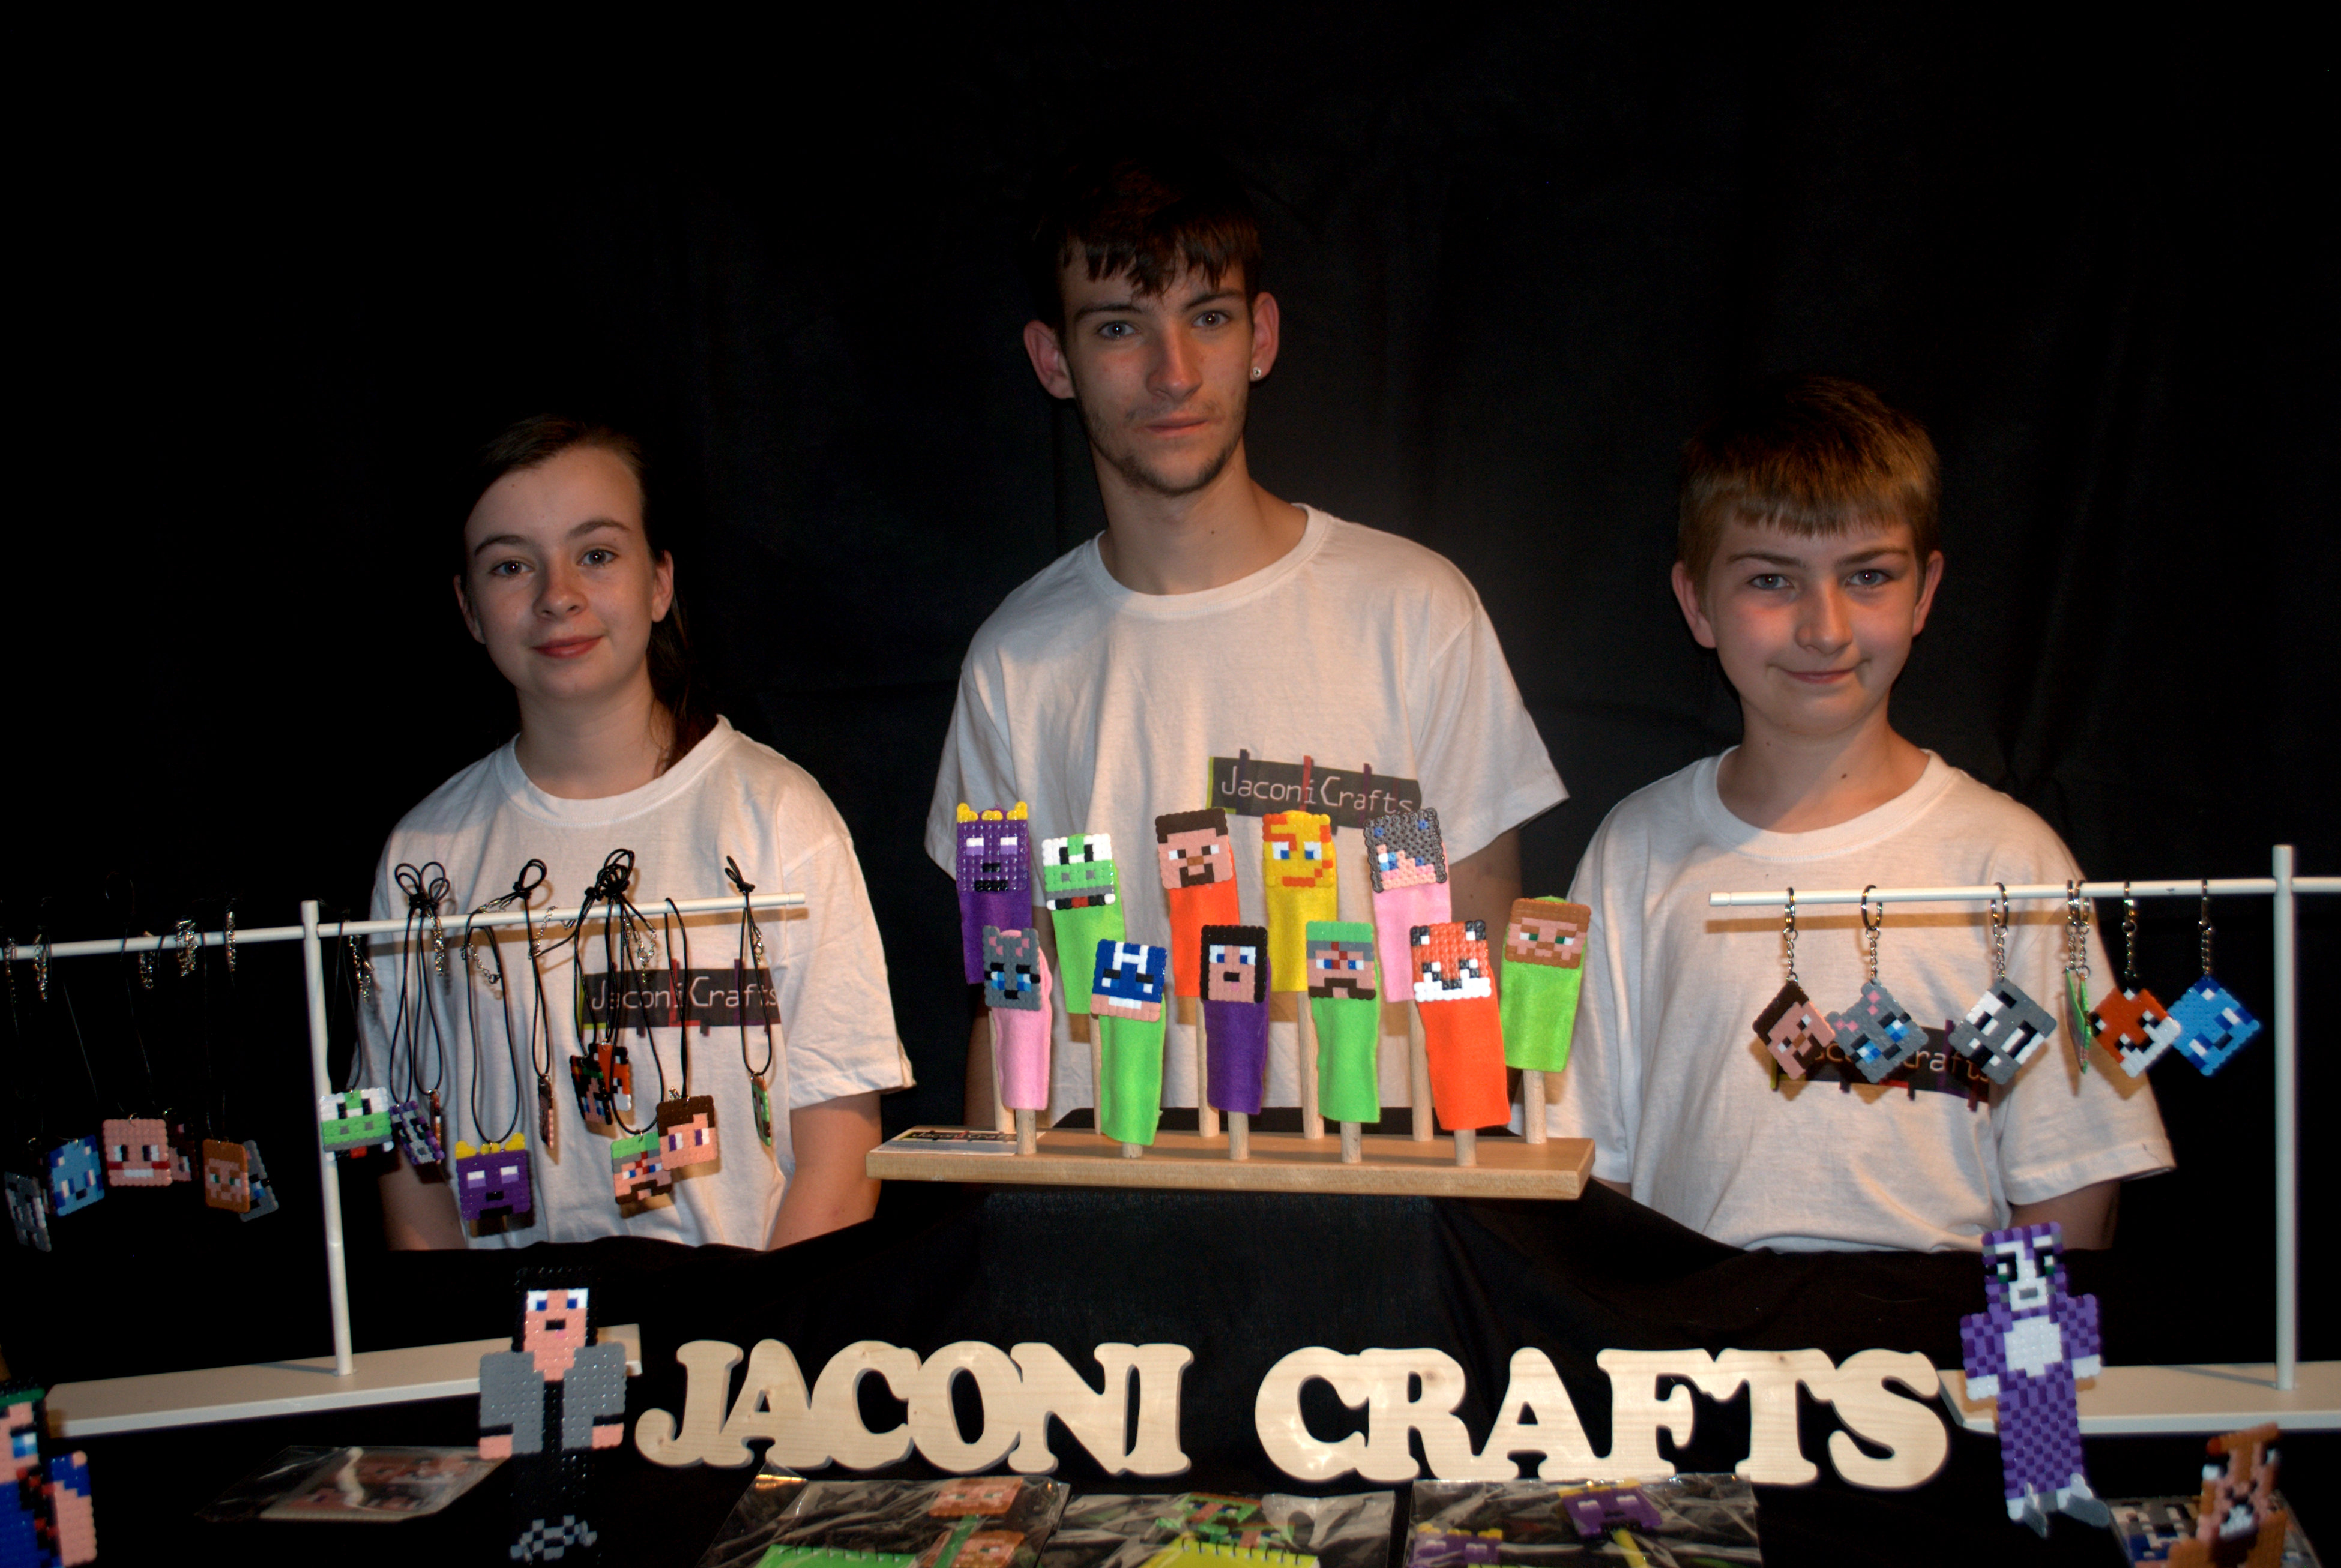 JaconiCrafts—Three Young Entrepreneurs Minecraft Business Takes Off! | Gearcraft